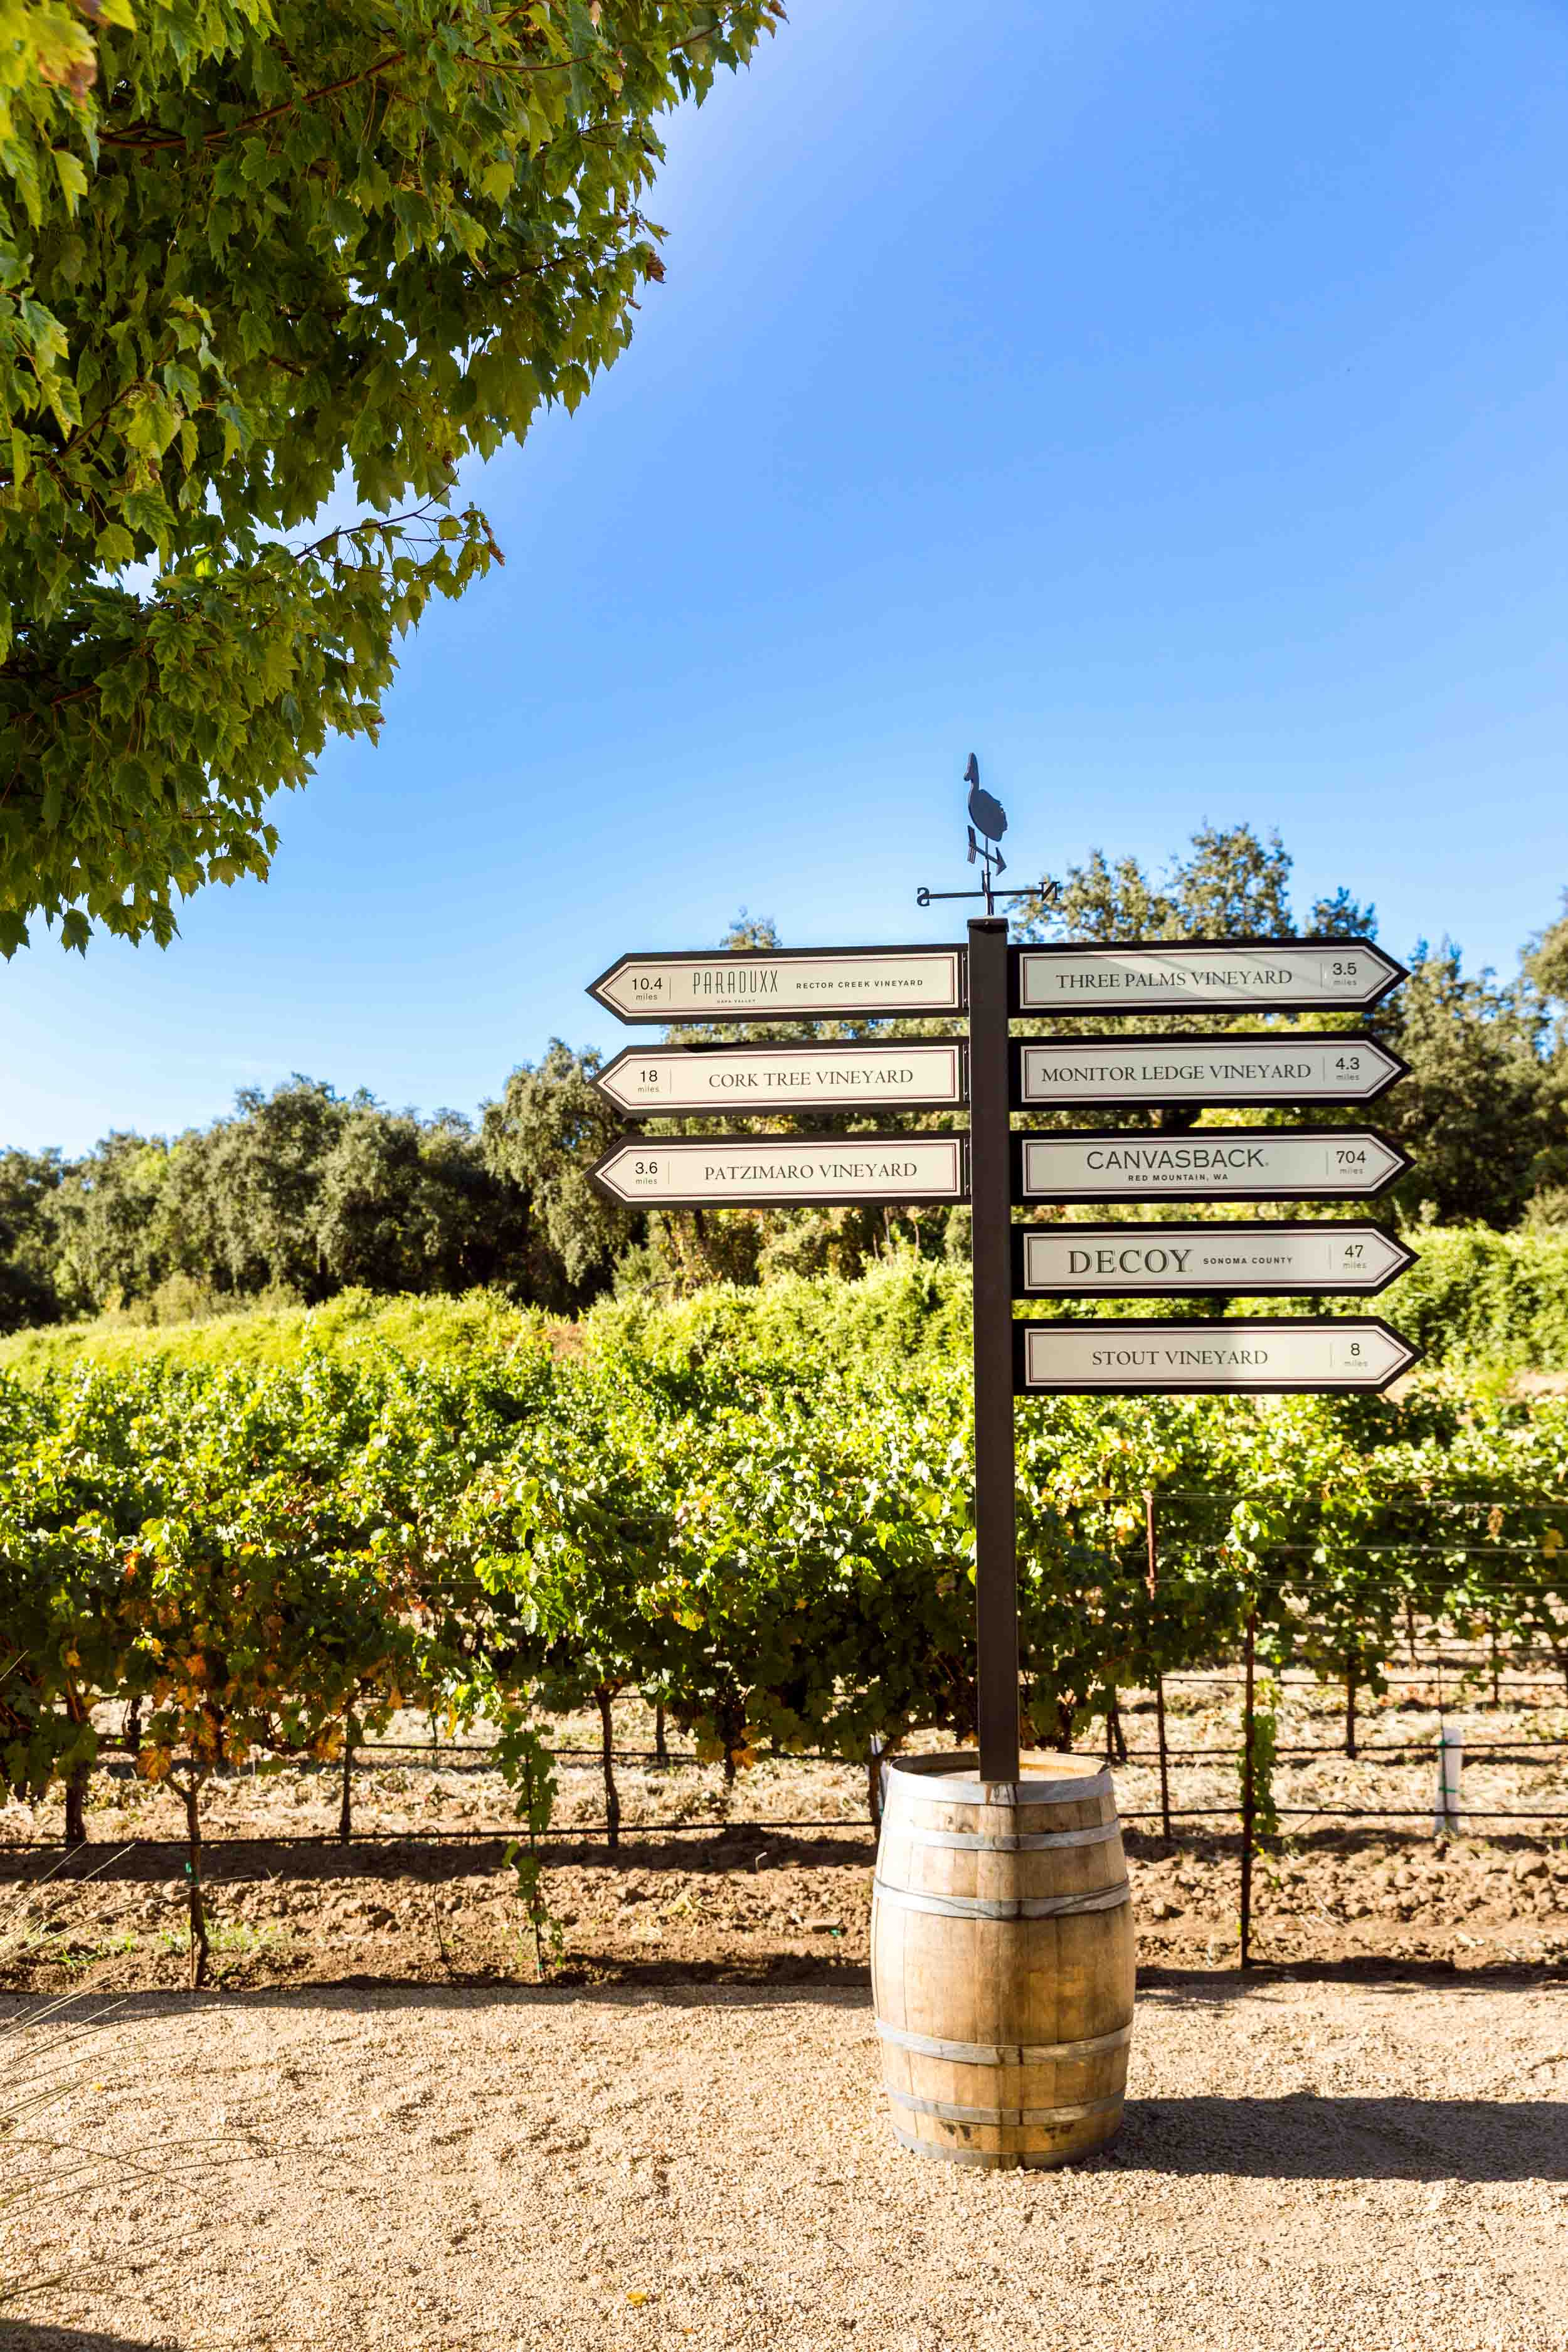 Duckhorn Vineyards, known for their Three Palms Merlot, photographed for Wine Spectator.